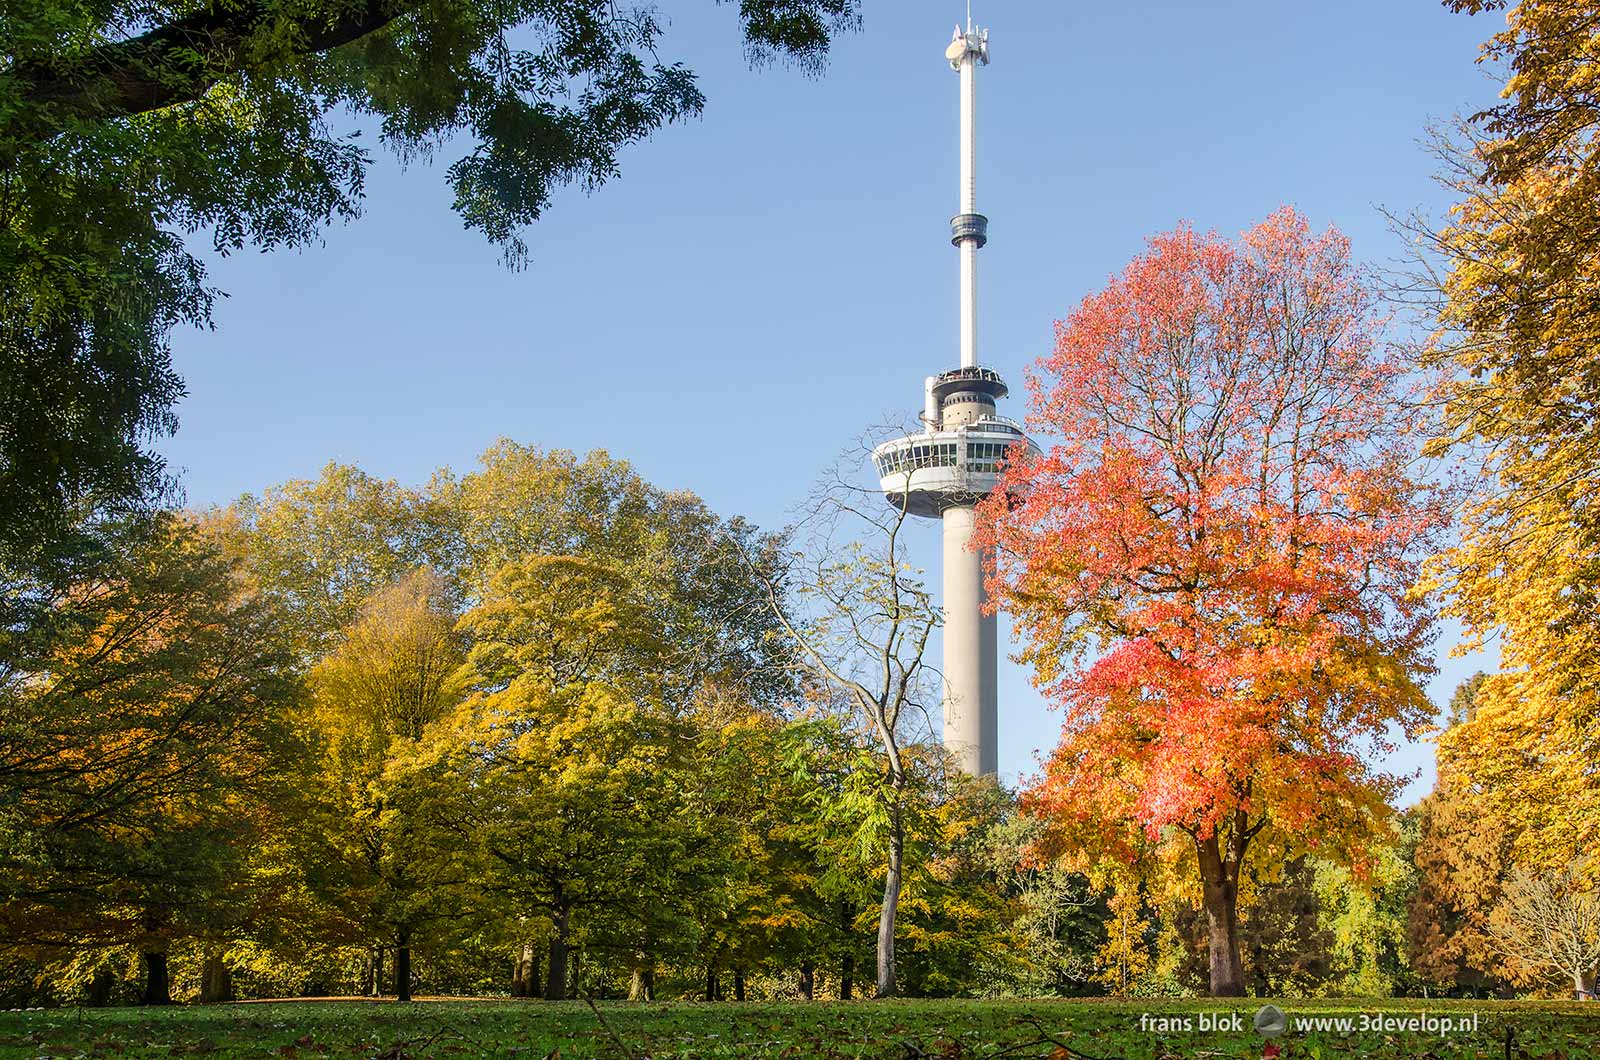 Autumn image of The Park in Rotterdam with a sweet gum tree (liquidambar styraciflua) as a big attention grabber next to the Euromast tower